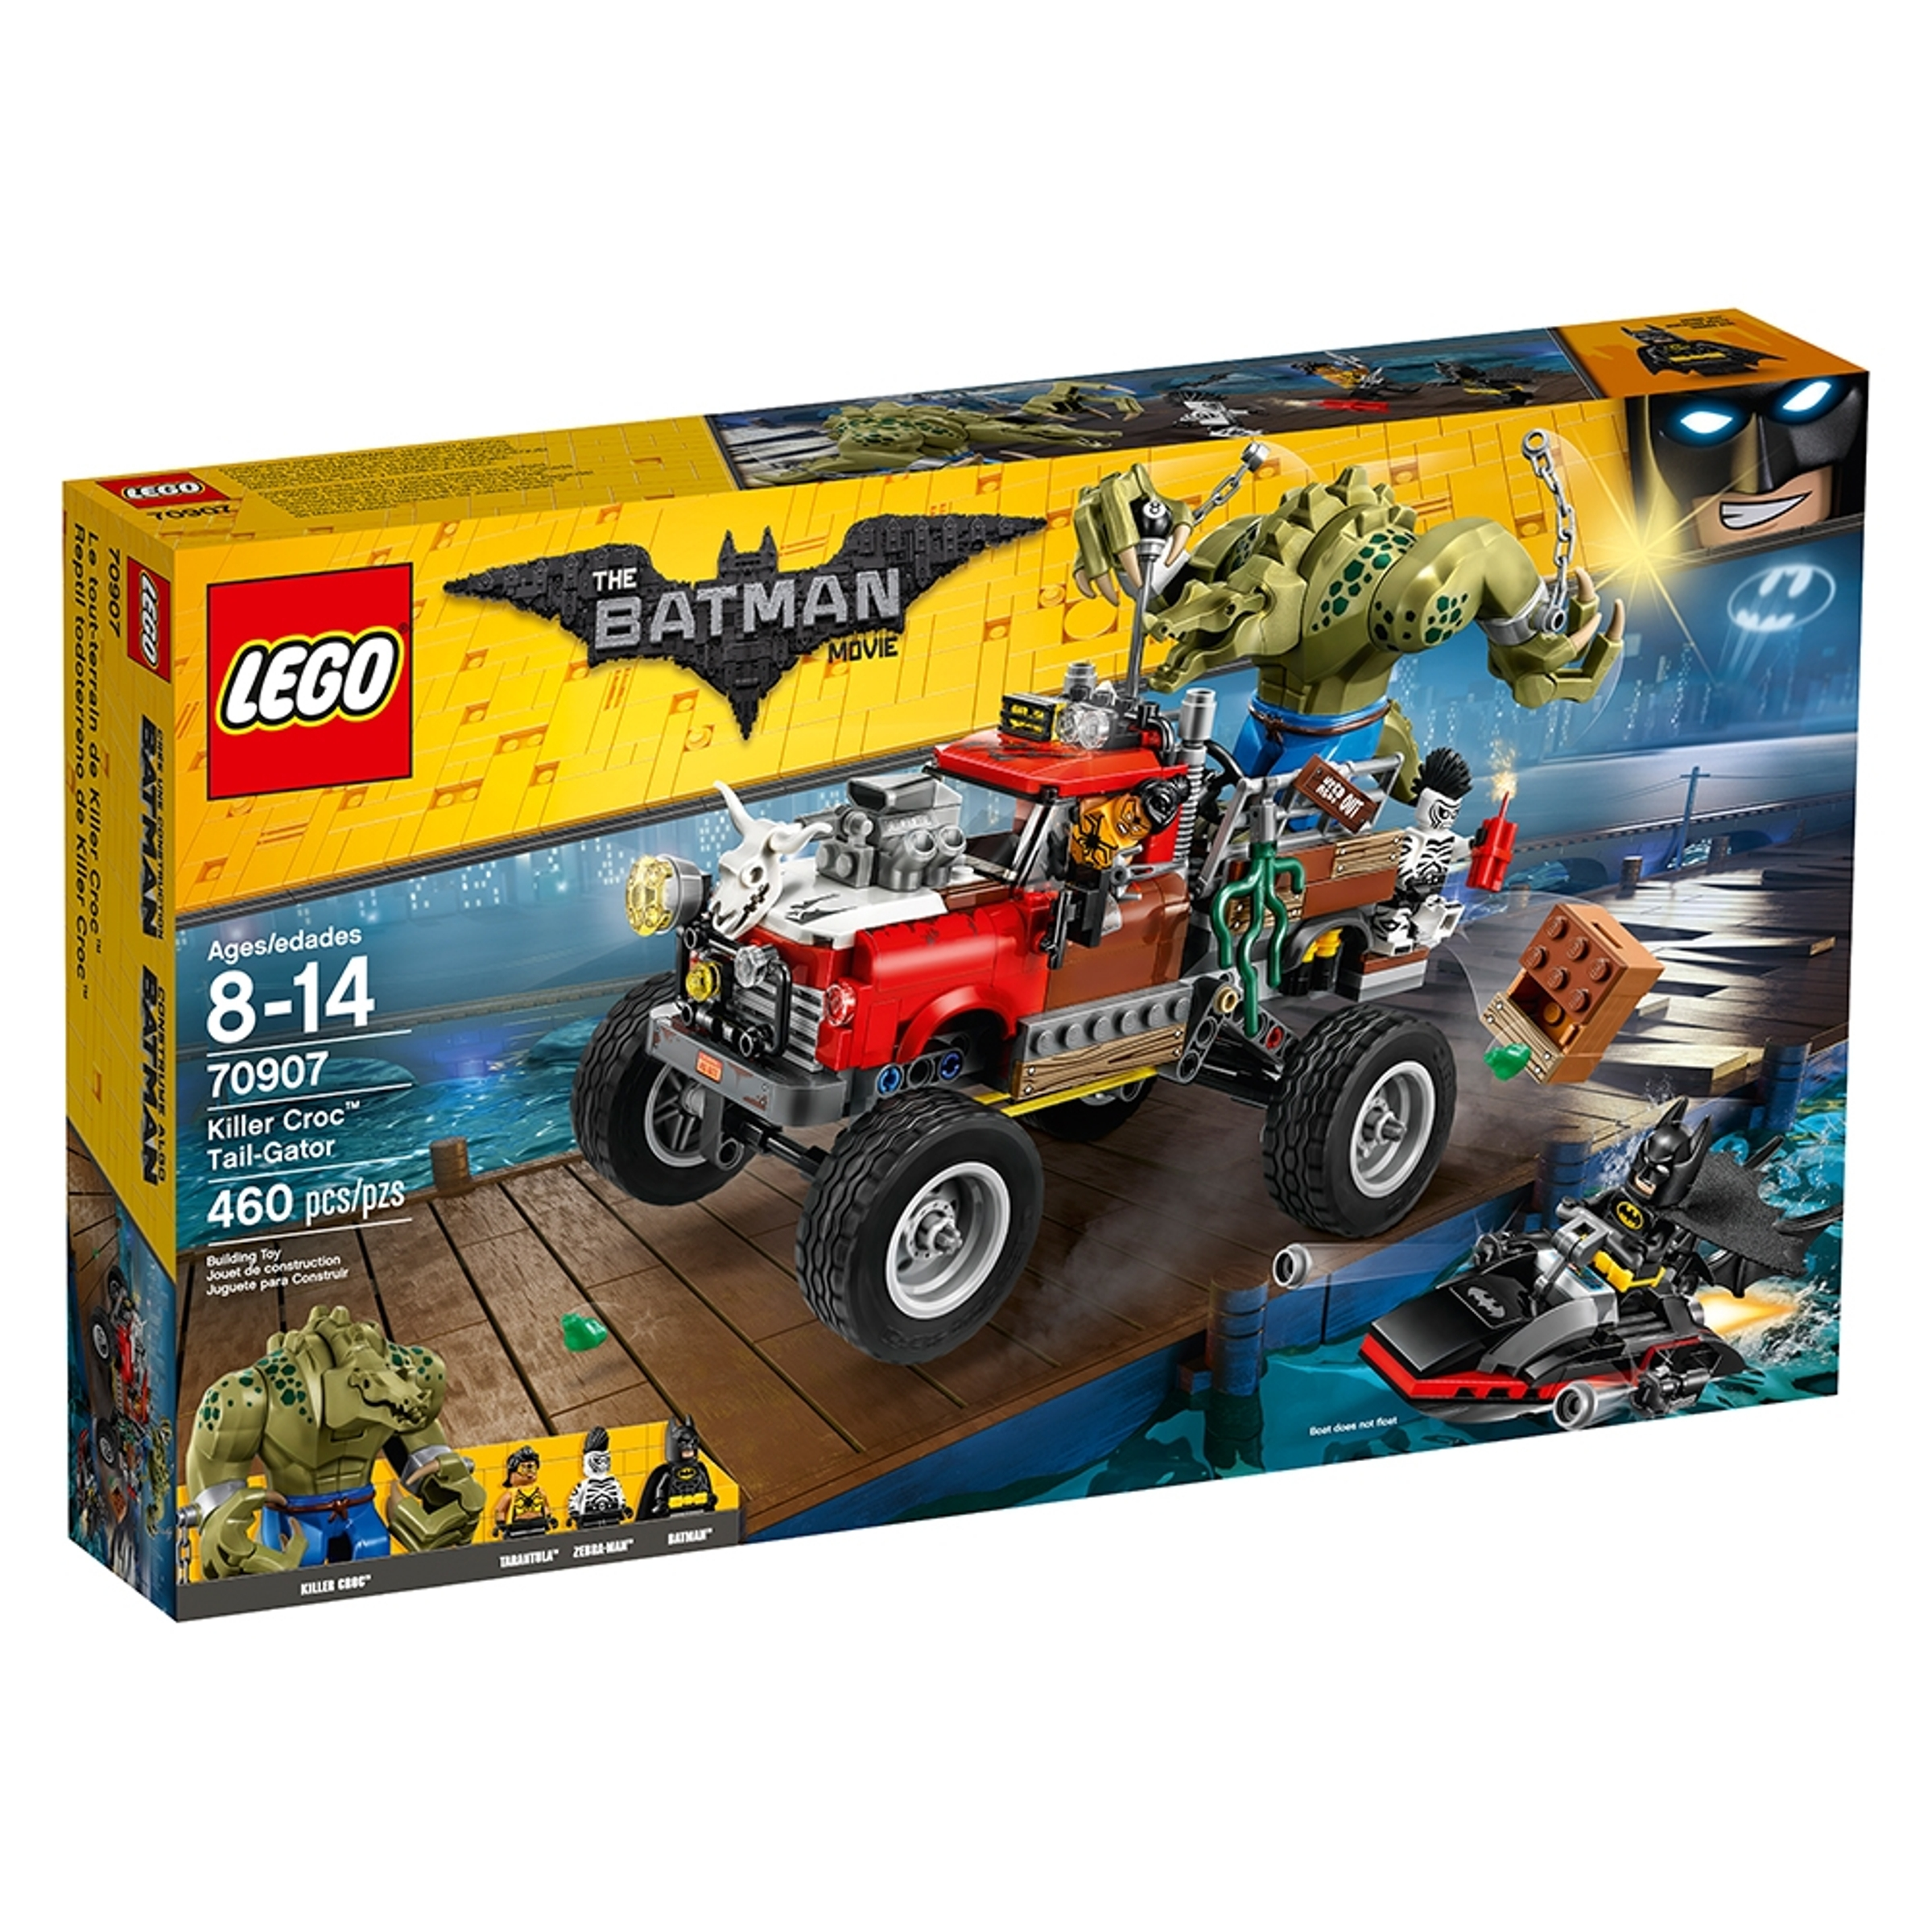 lego 70907 killer croc ja varjostaja alligaattori